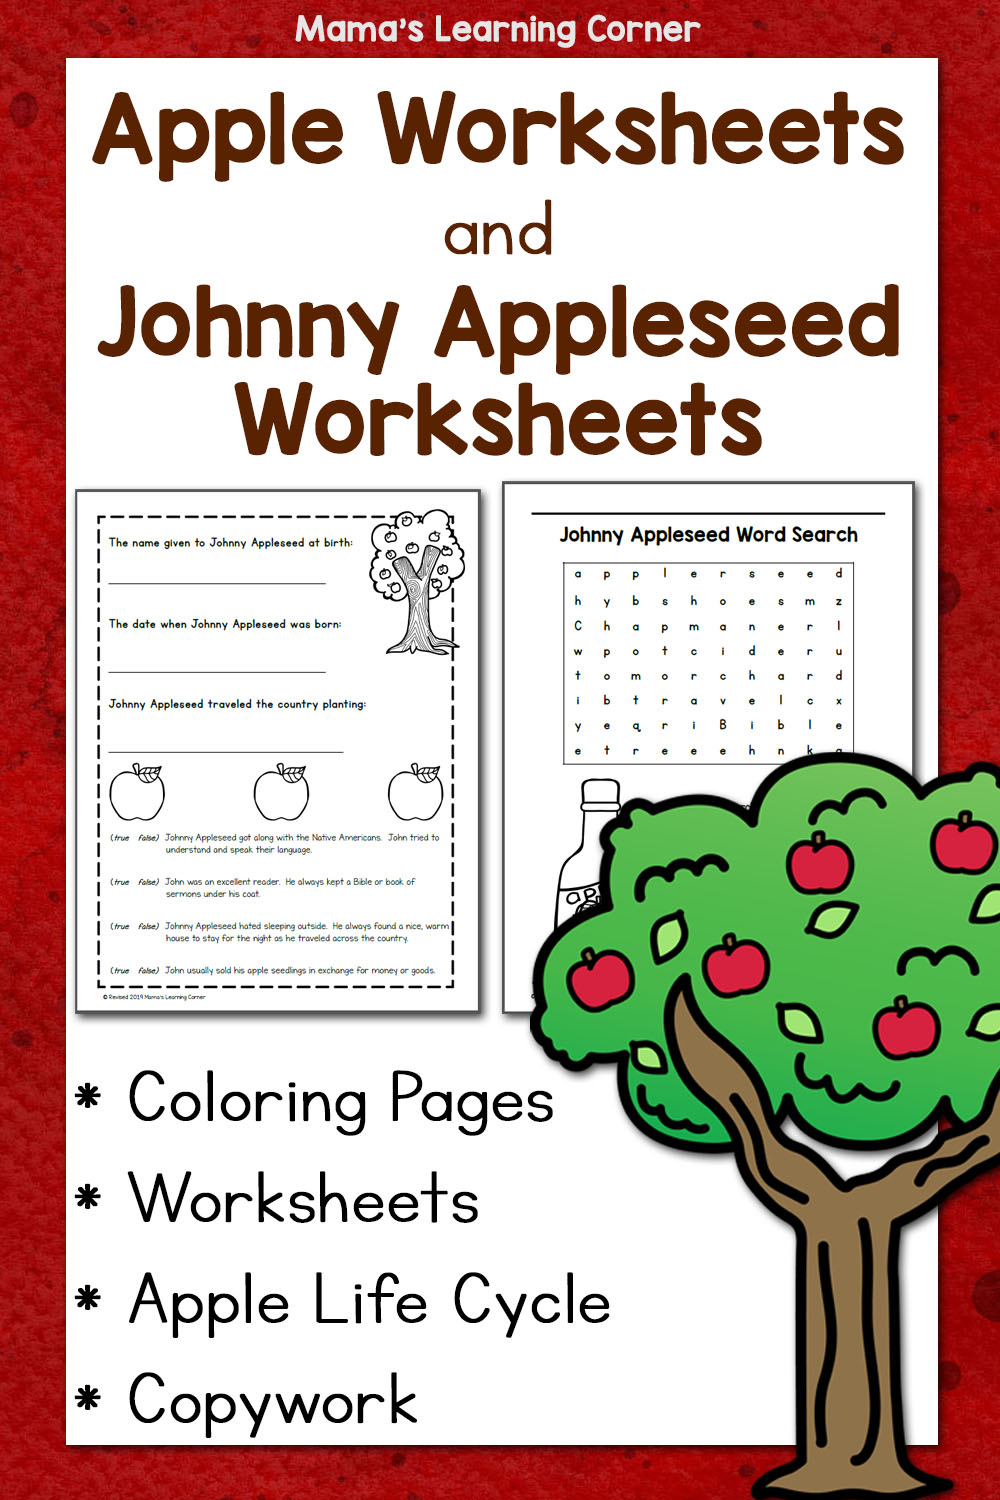 medium resolution of Apple Worksheets and Johnny Appleseed Worksheets - Mamas Learning Corner